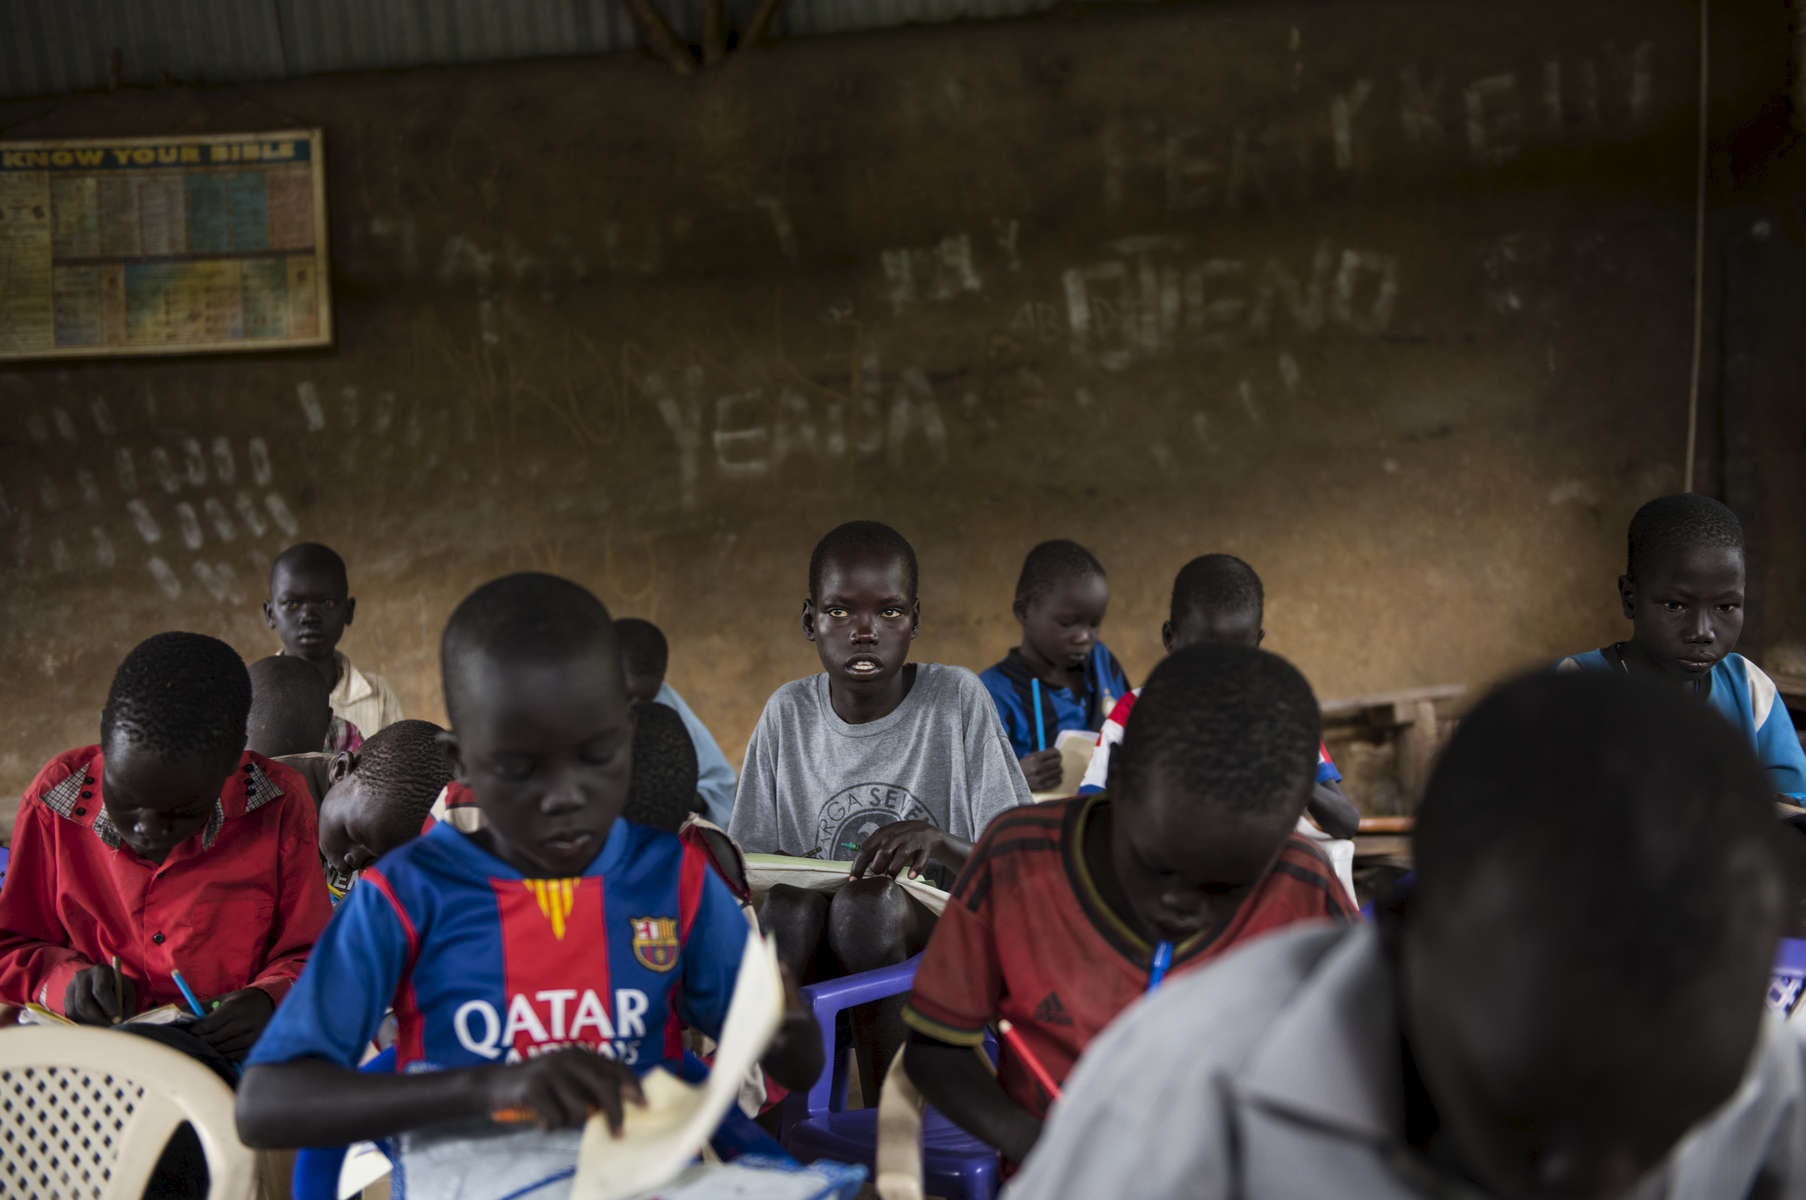 Chuol, 9, from southern Unity State, attends class with other internally displaced children and local villagers in a UNICEF-sponsored Child Friendly Space in Unity State, South Sudan, September 11, 2015.   Chuol was chased out of his own village with his grandmother and sister several months ago when it  was attacked, and his father and grandfather were burned alive. He, his grandmother, and sister fled to this area, where they are living on the ground of a host family. in South Sudan, September 11, 2015. Thousands of civilians have been killed, and others displaced since fighting between those loyal to President Salva Kiir and those loyal to opposition leader Riek Marchar began again in 2013.